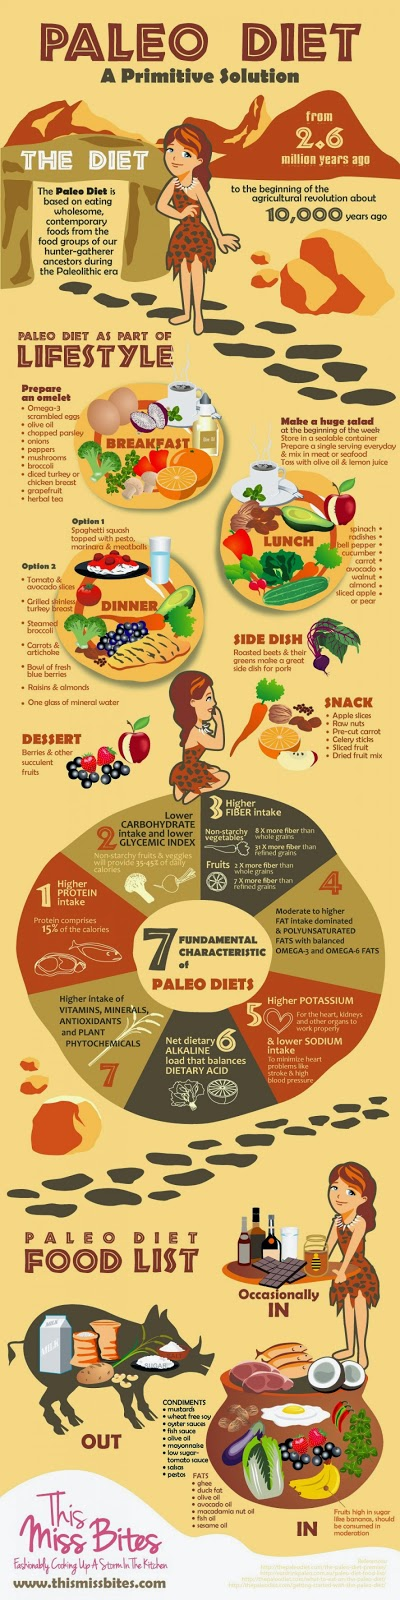 The Paleo Diet Explained 1/4